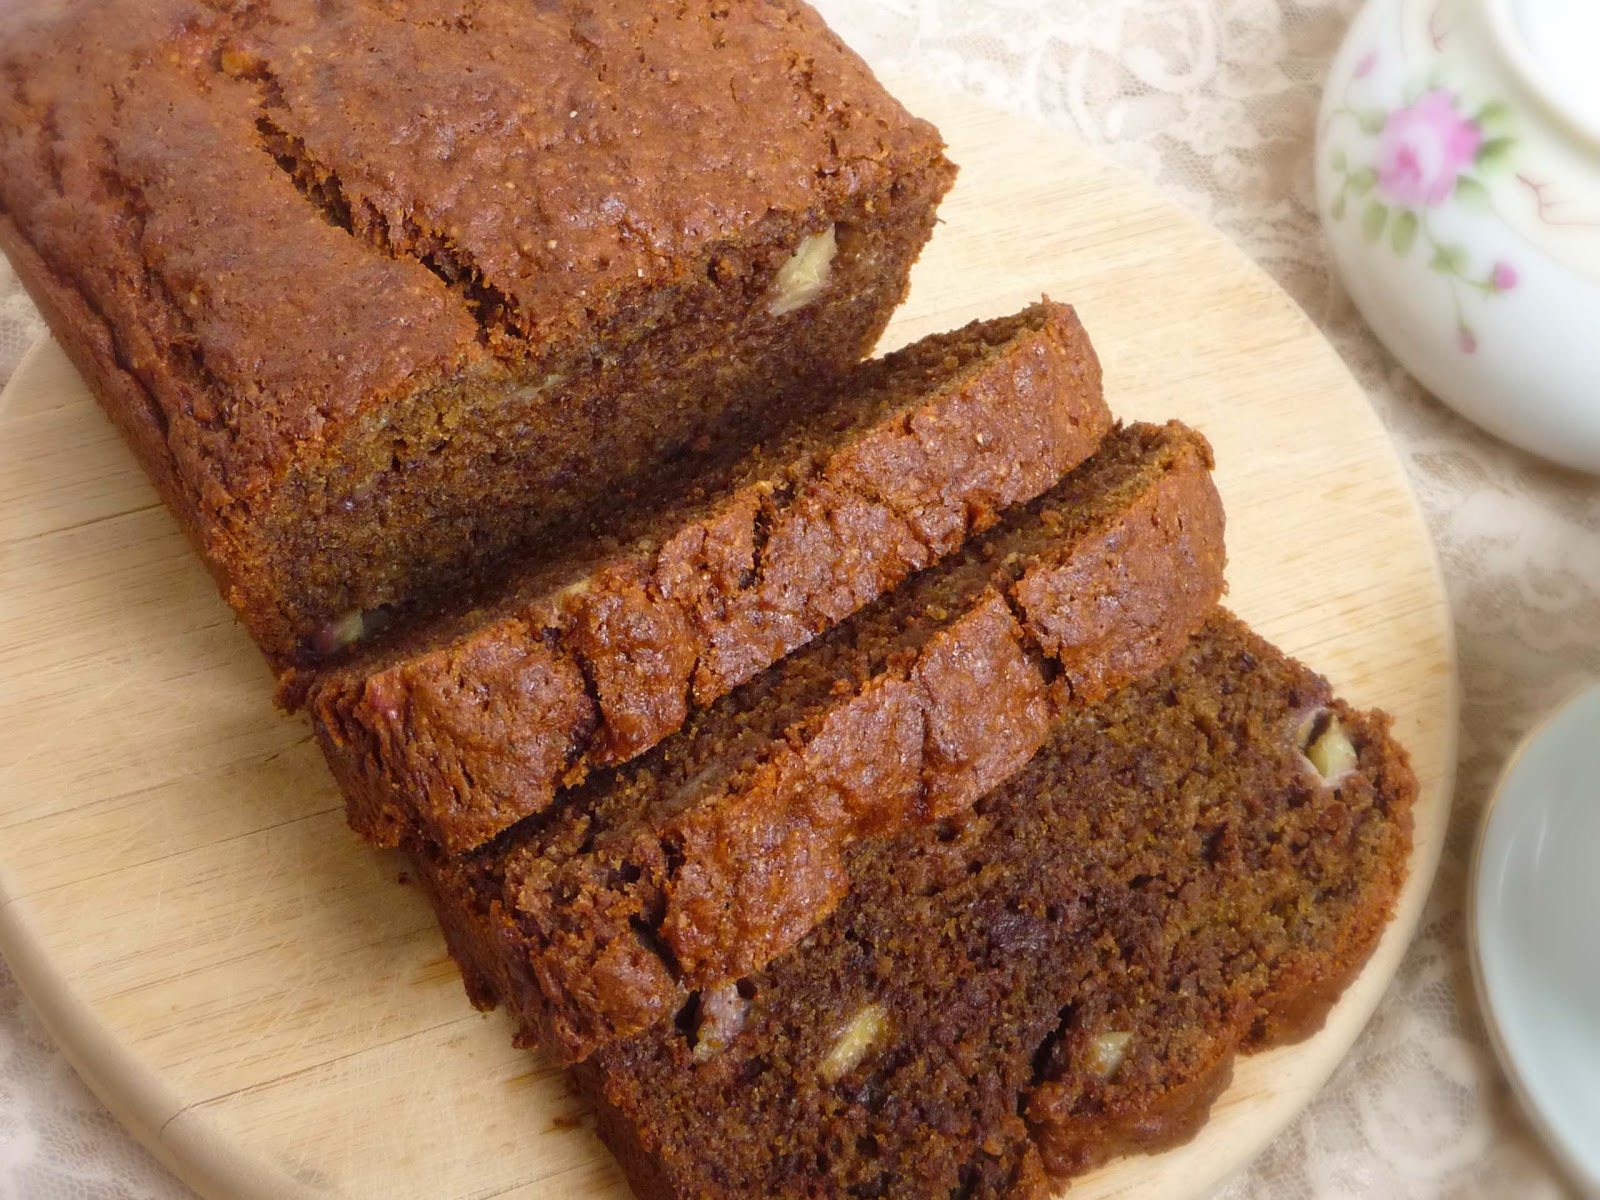 ... Banana Bread and the Top 5 Ingredients to Have in Your Gluten-Free